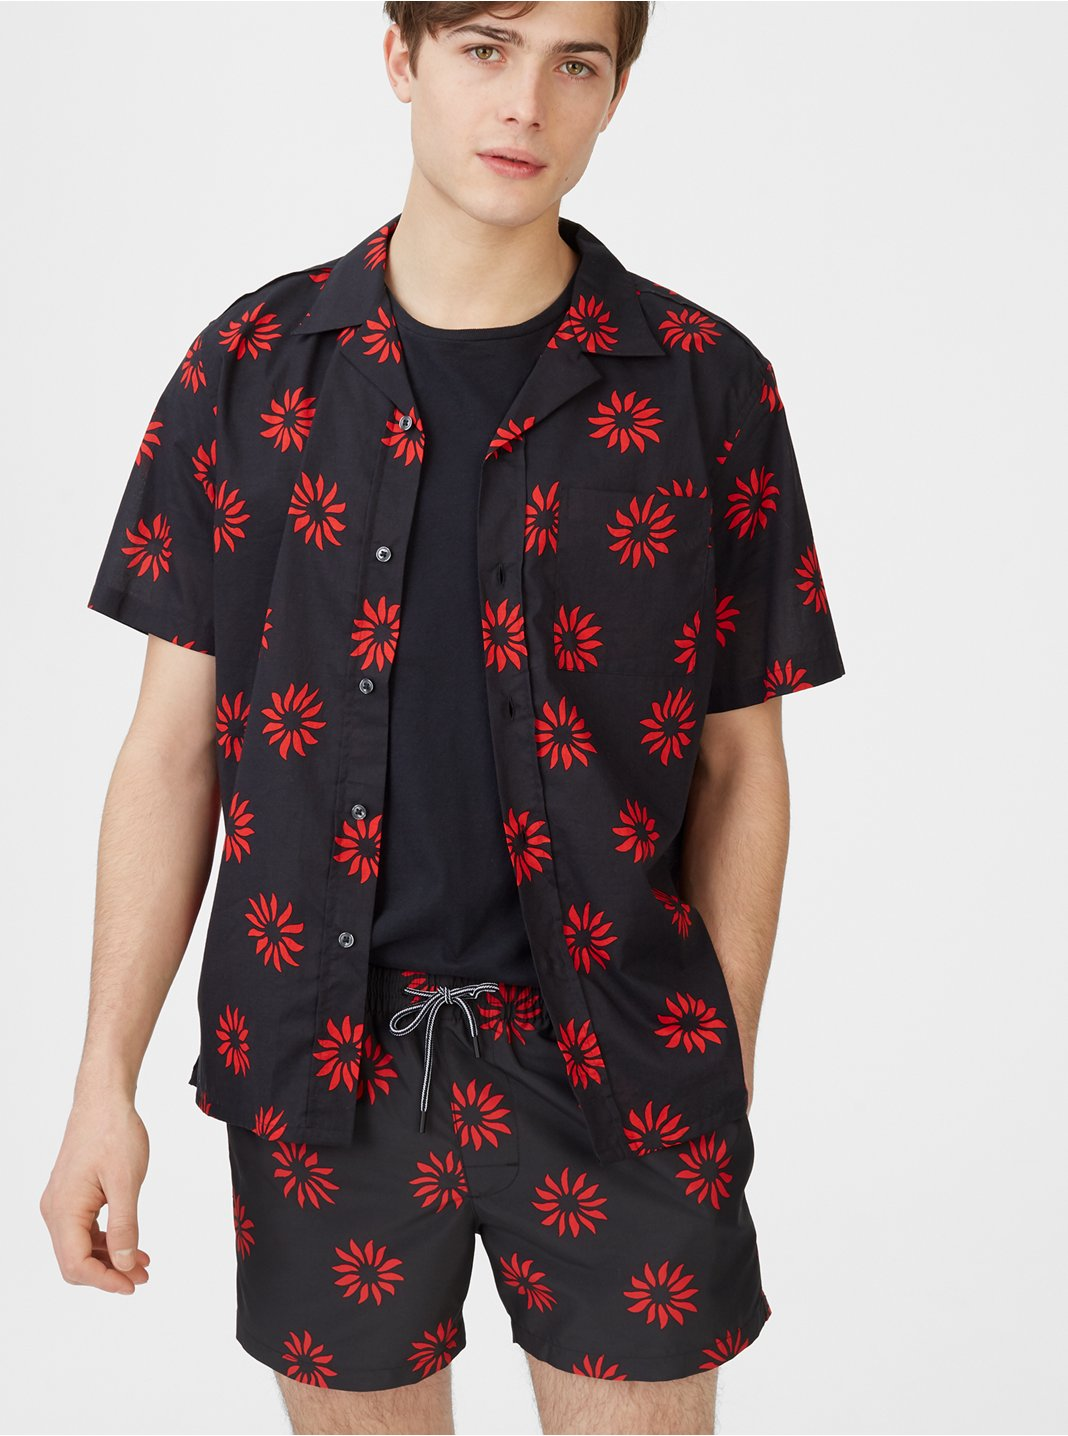 Camp Collar Pinwheel Shirt